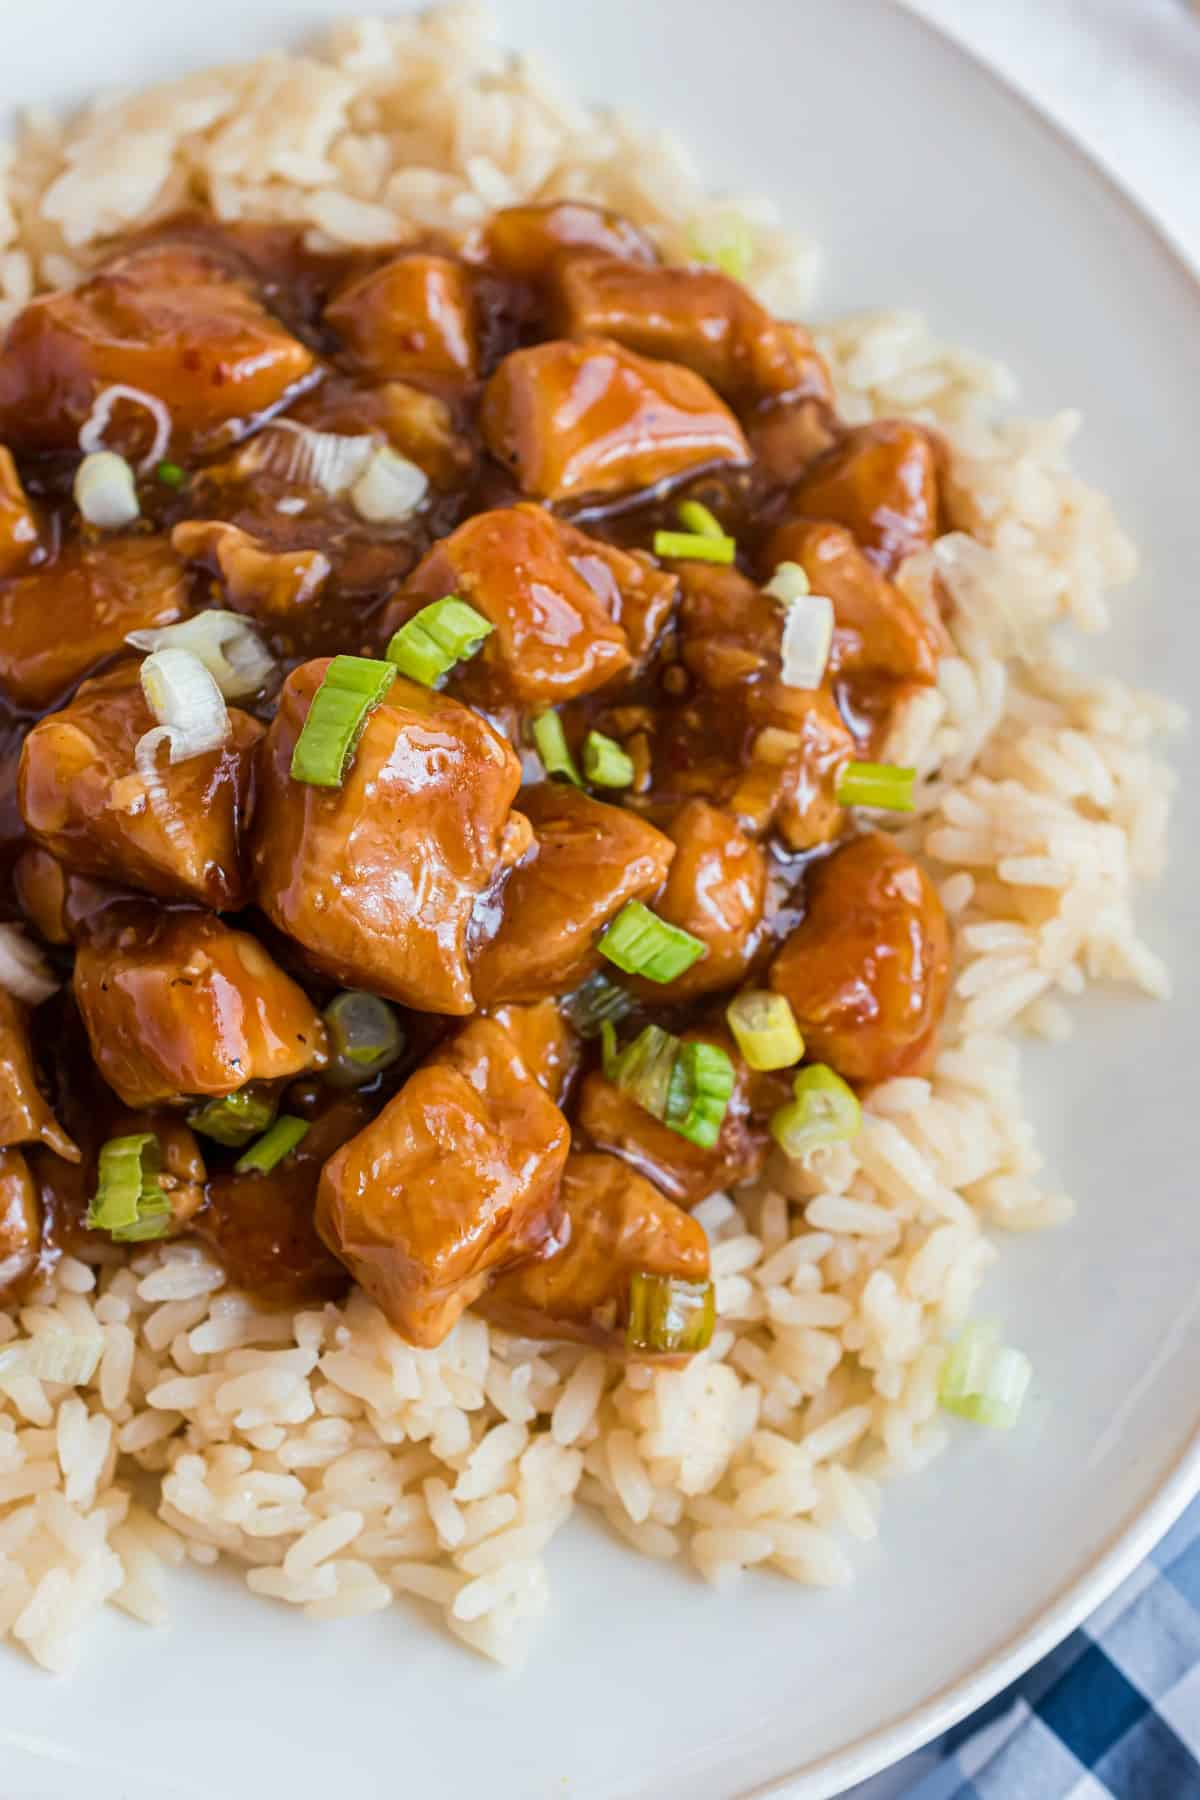 Brown rice with orange chicken on a white plate.